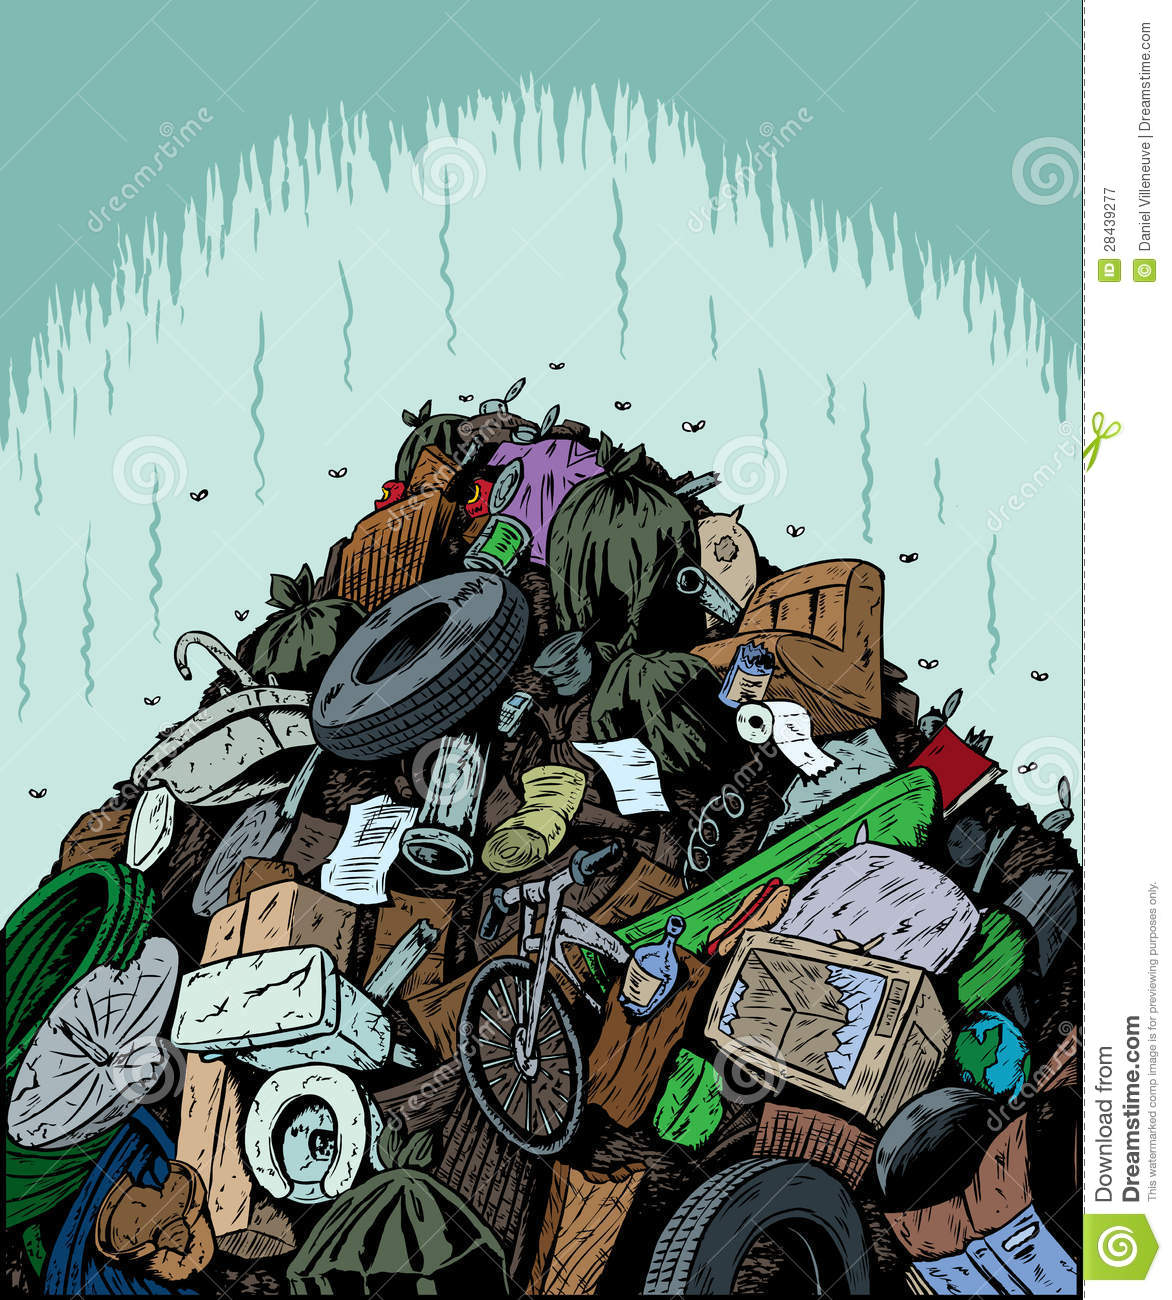 Garbage Dump Royalty Free Stock Photography - Image: 28439277